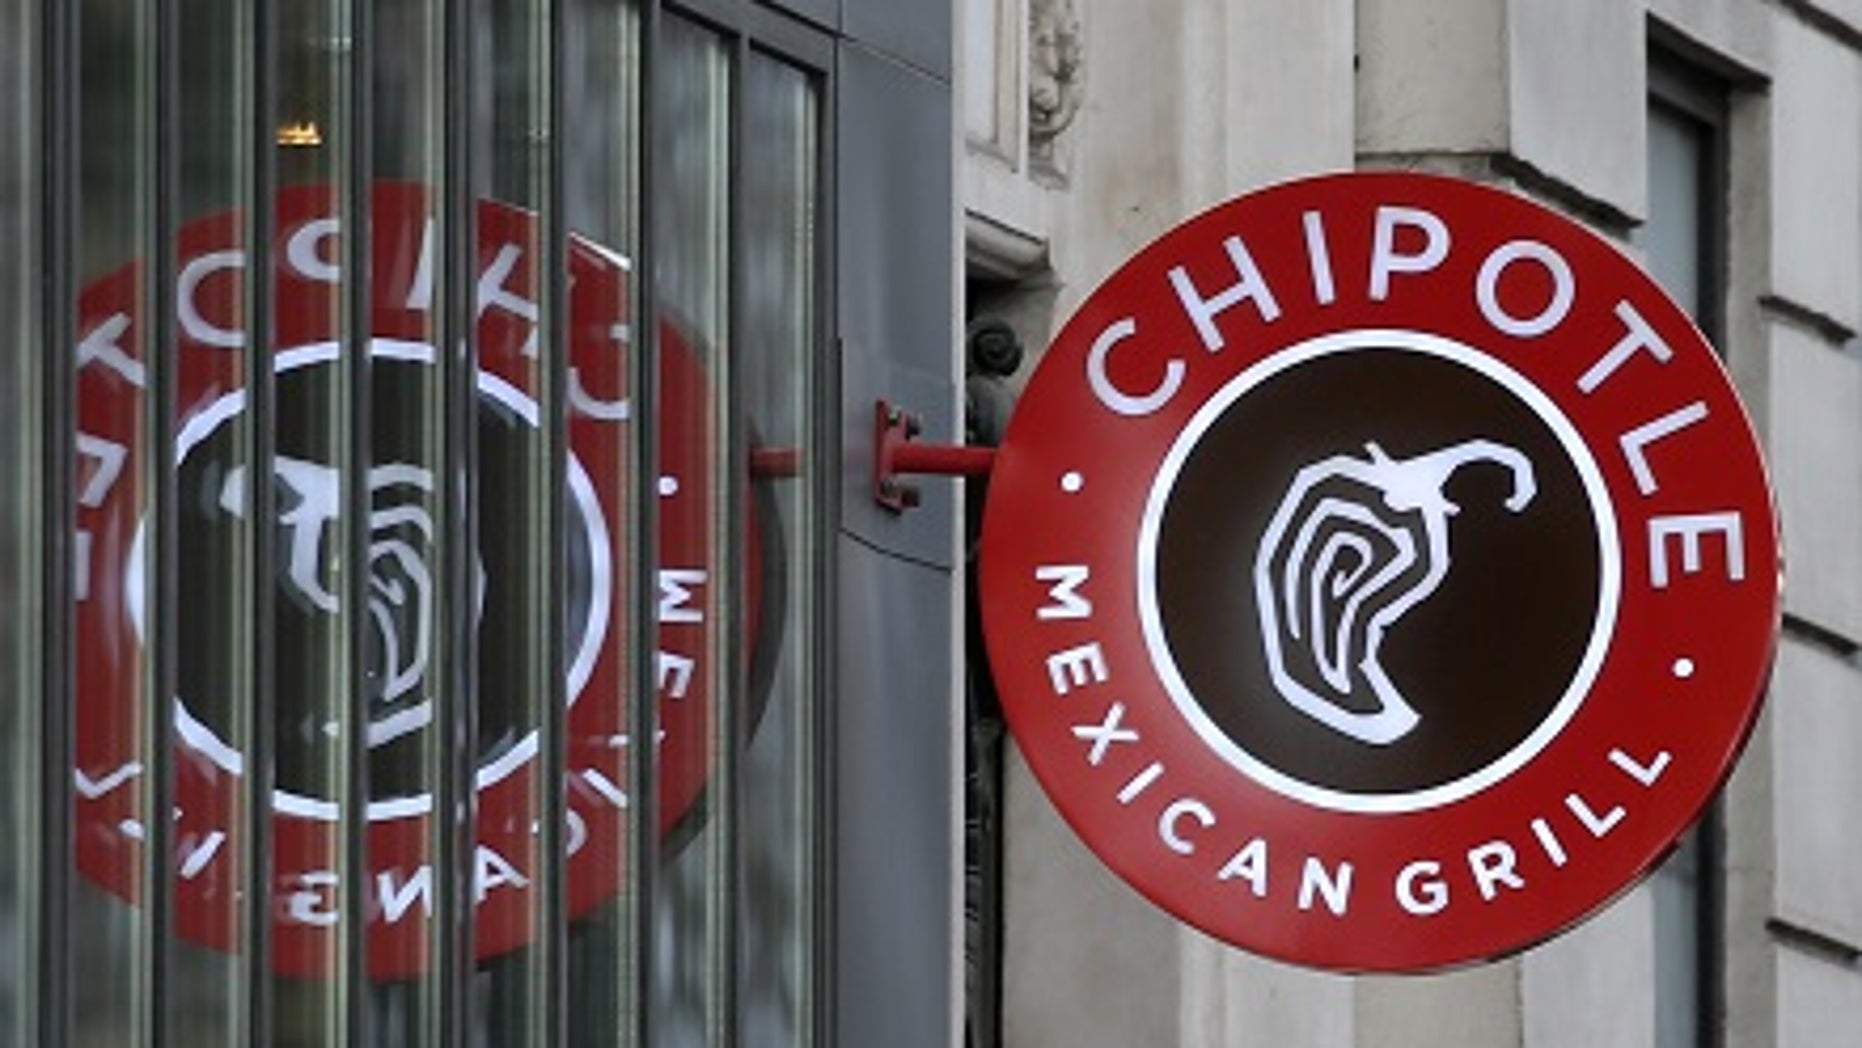 Chipotle has been accused of sickening their customers in recent years.